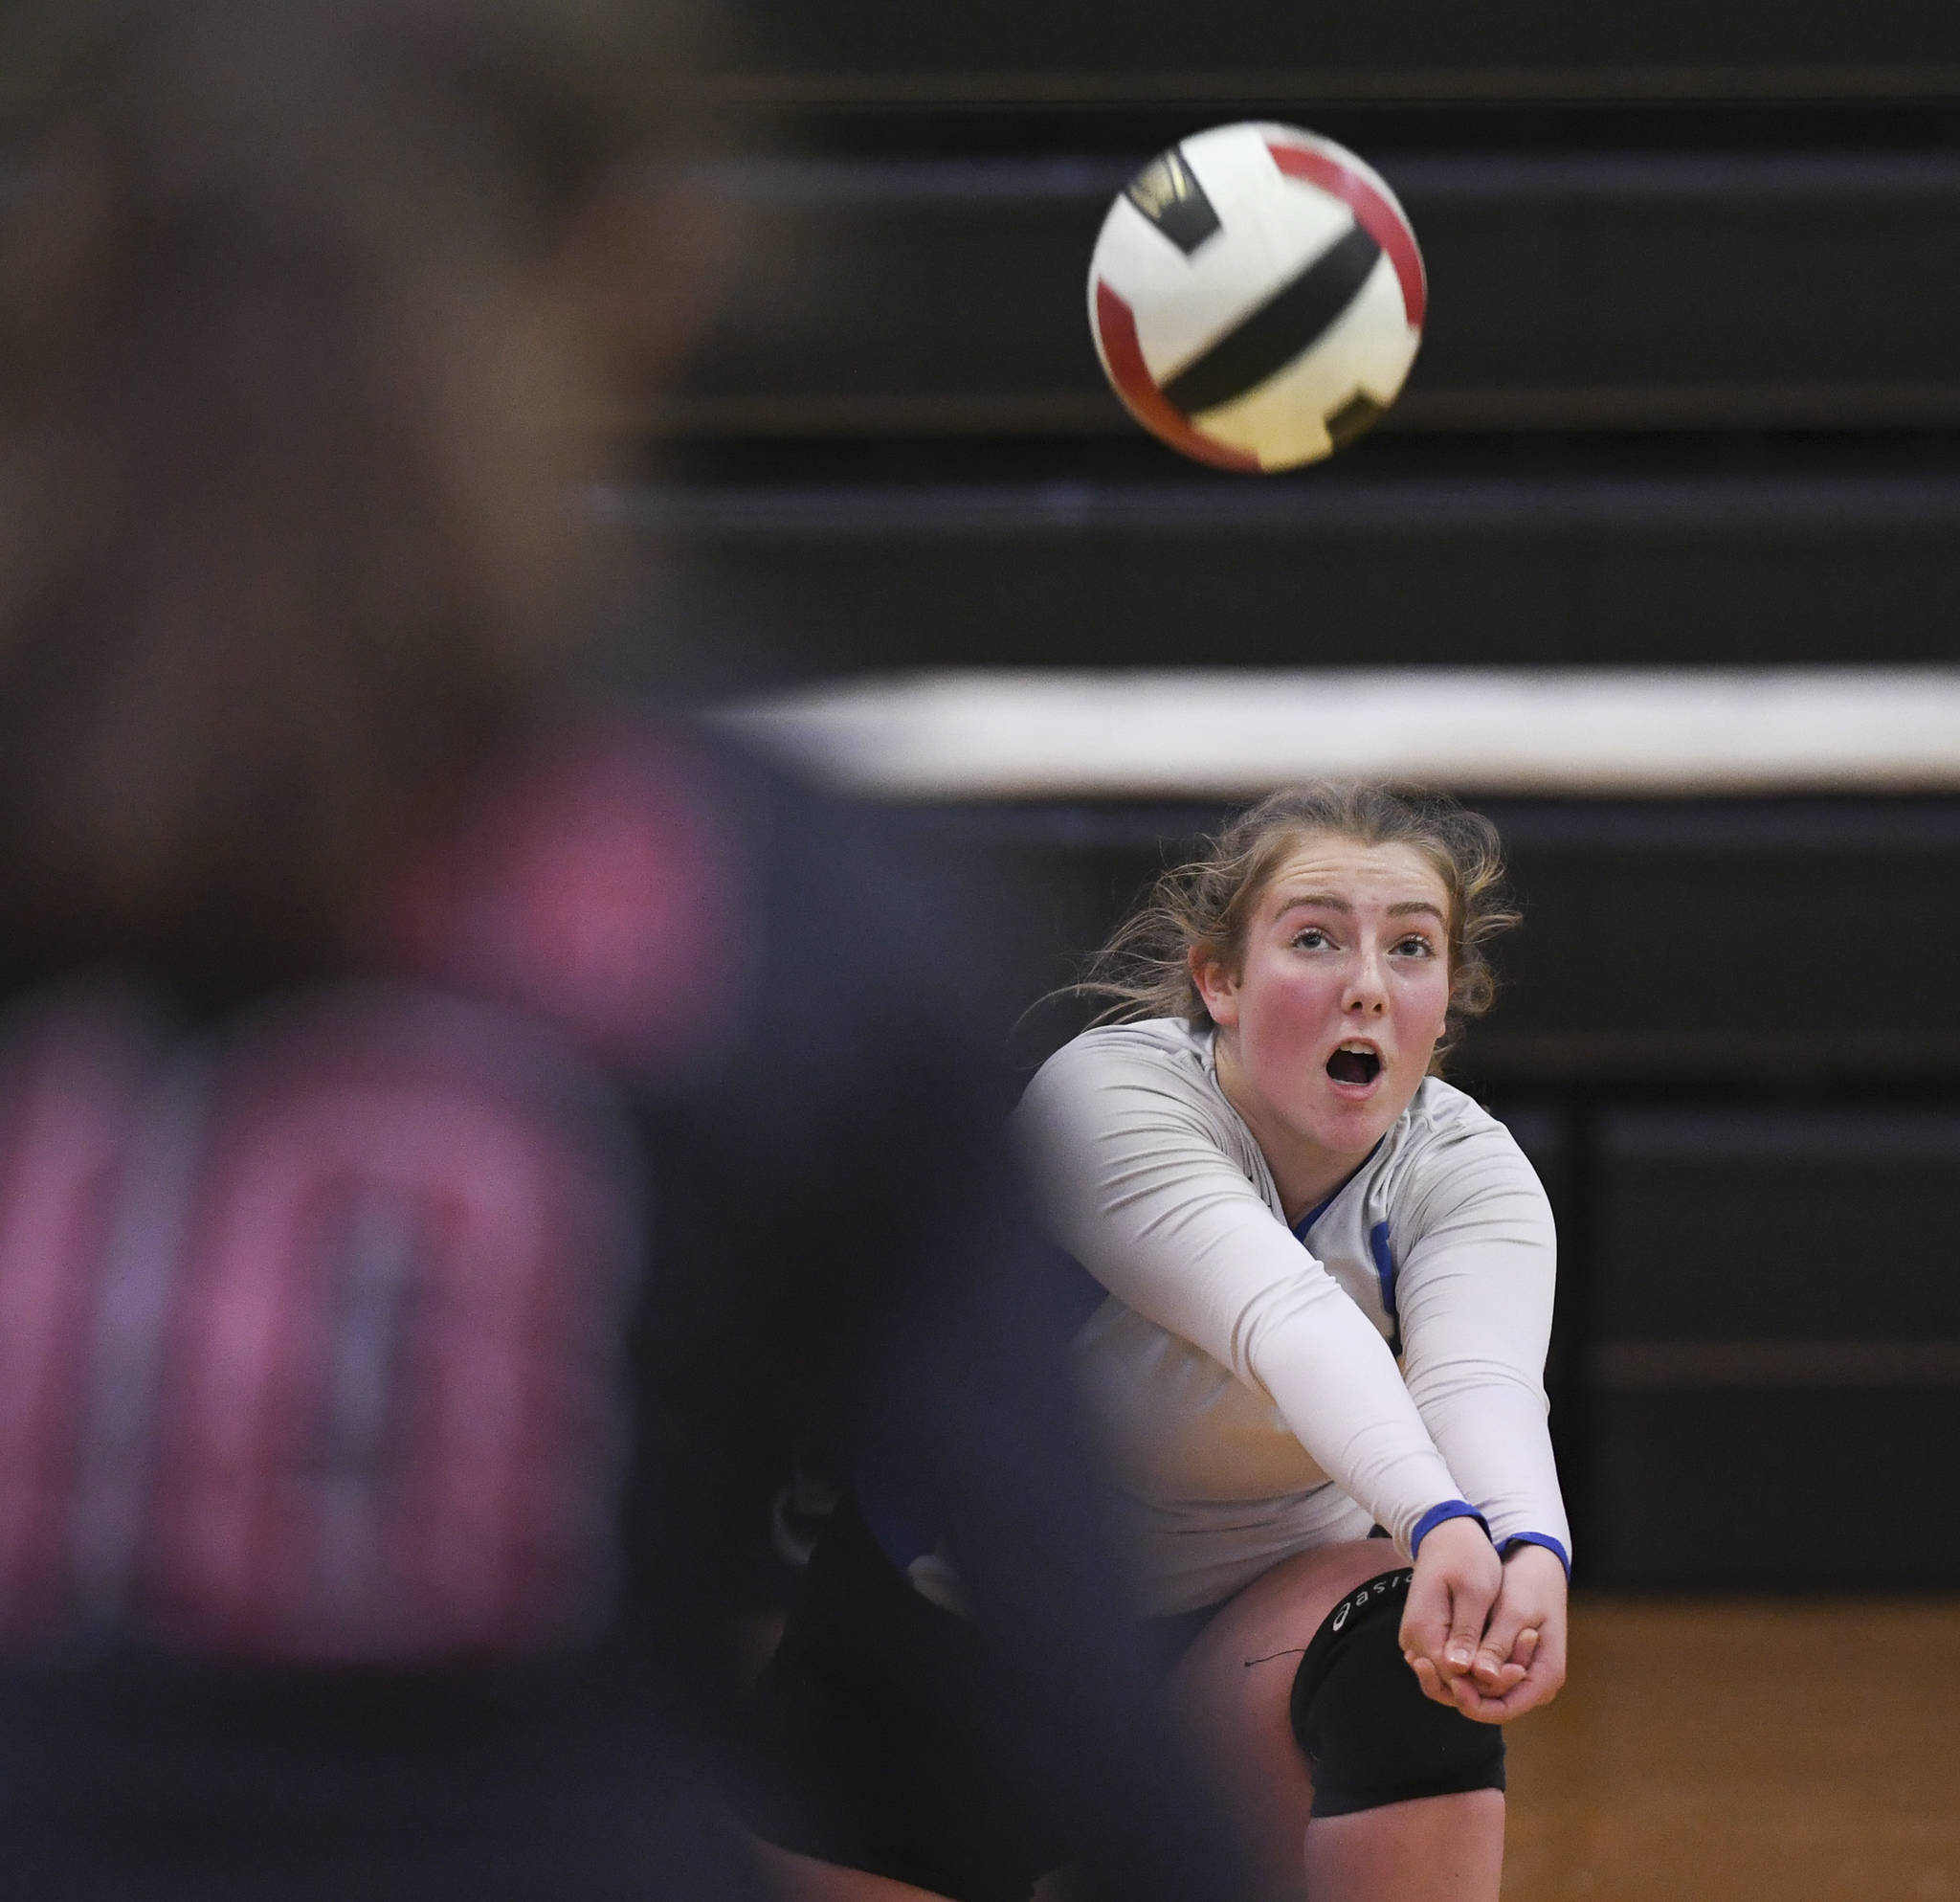 Thunder Mountain's Ann Steinman bumps the ball up against Juneau-Douglas at the Volleyball Jamboree at Juneau-Douglas High School: Yadaa.at Kalé on Friday, Aug. 30, 2019. (Michael Penn | Juneau Empire)